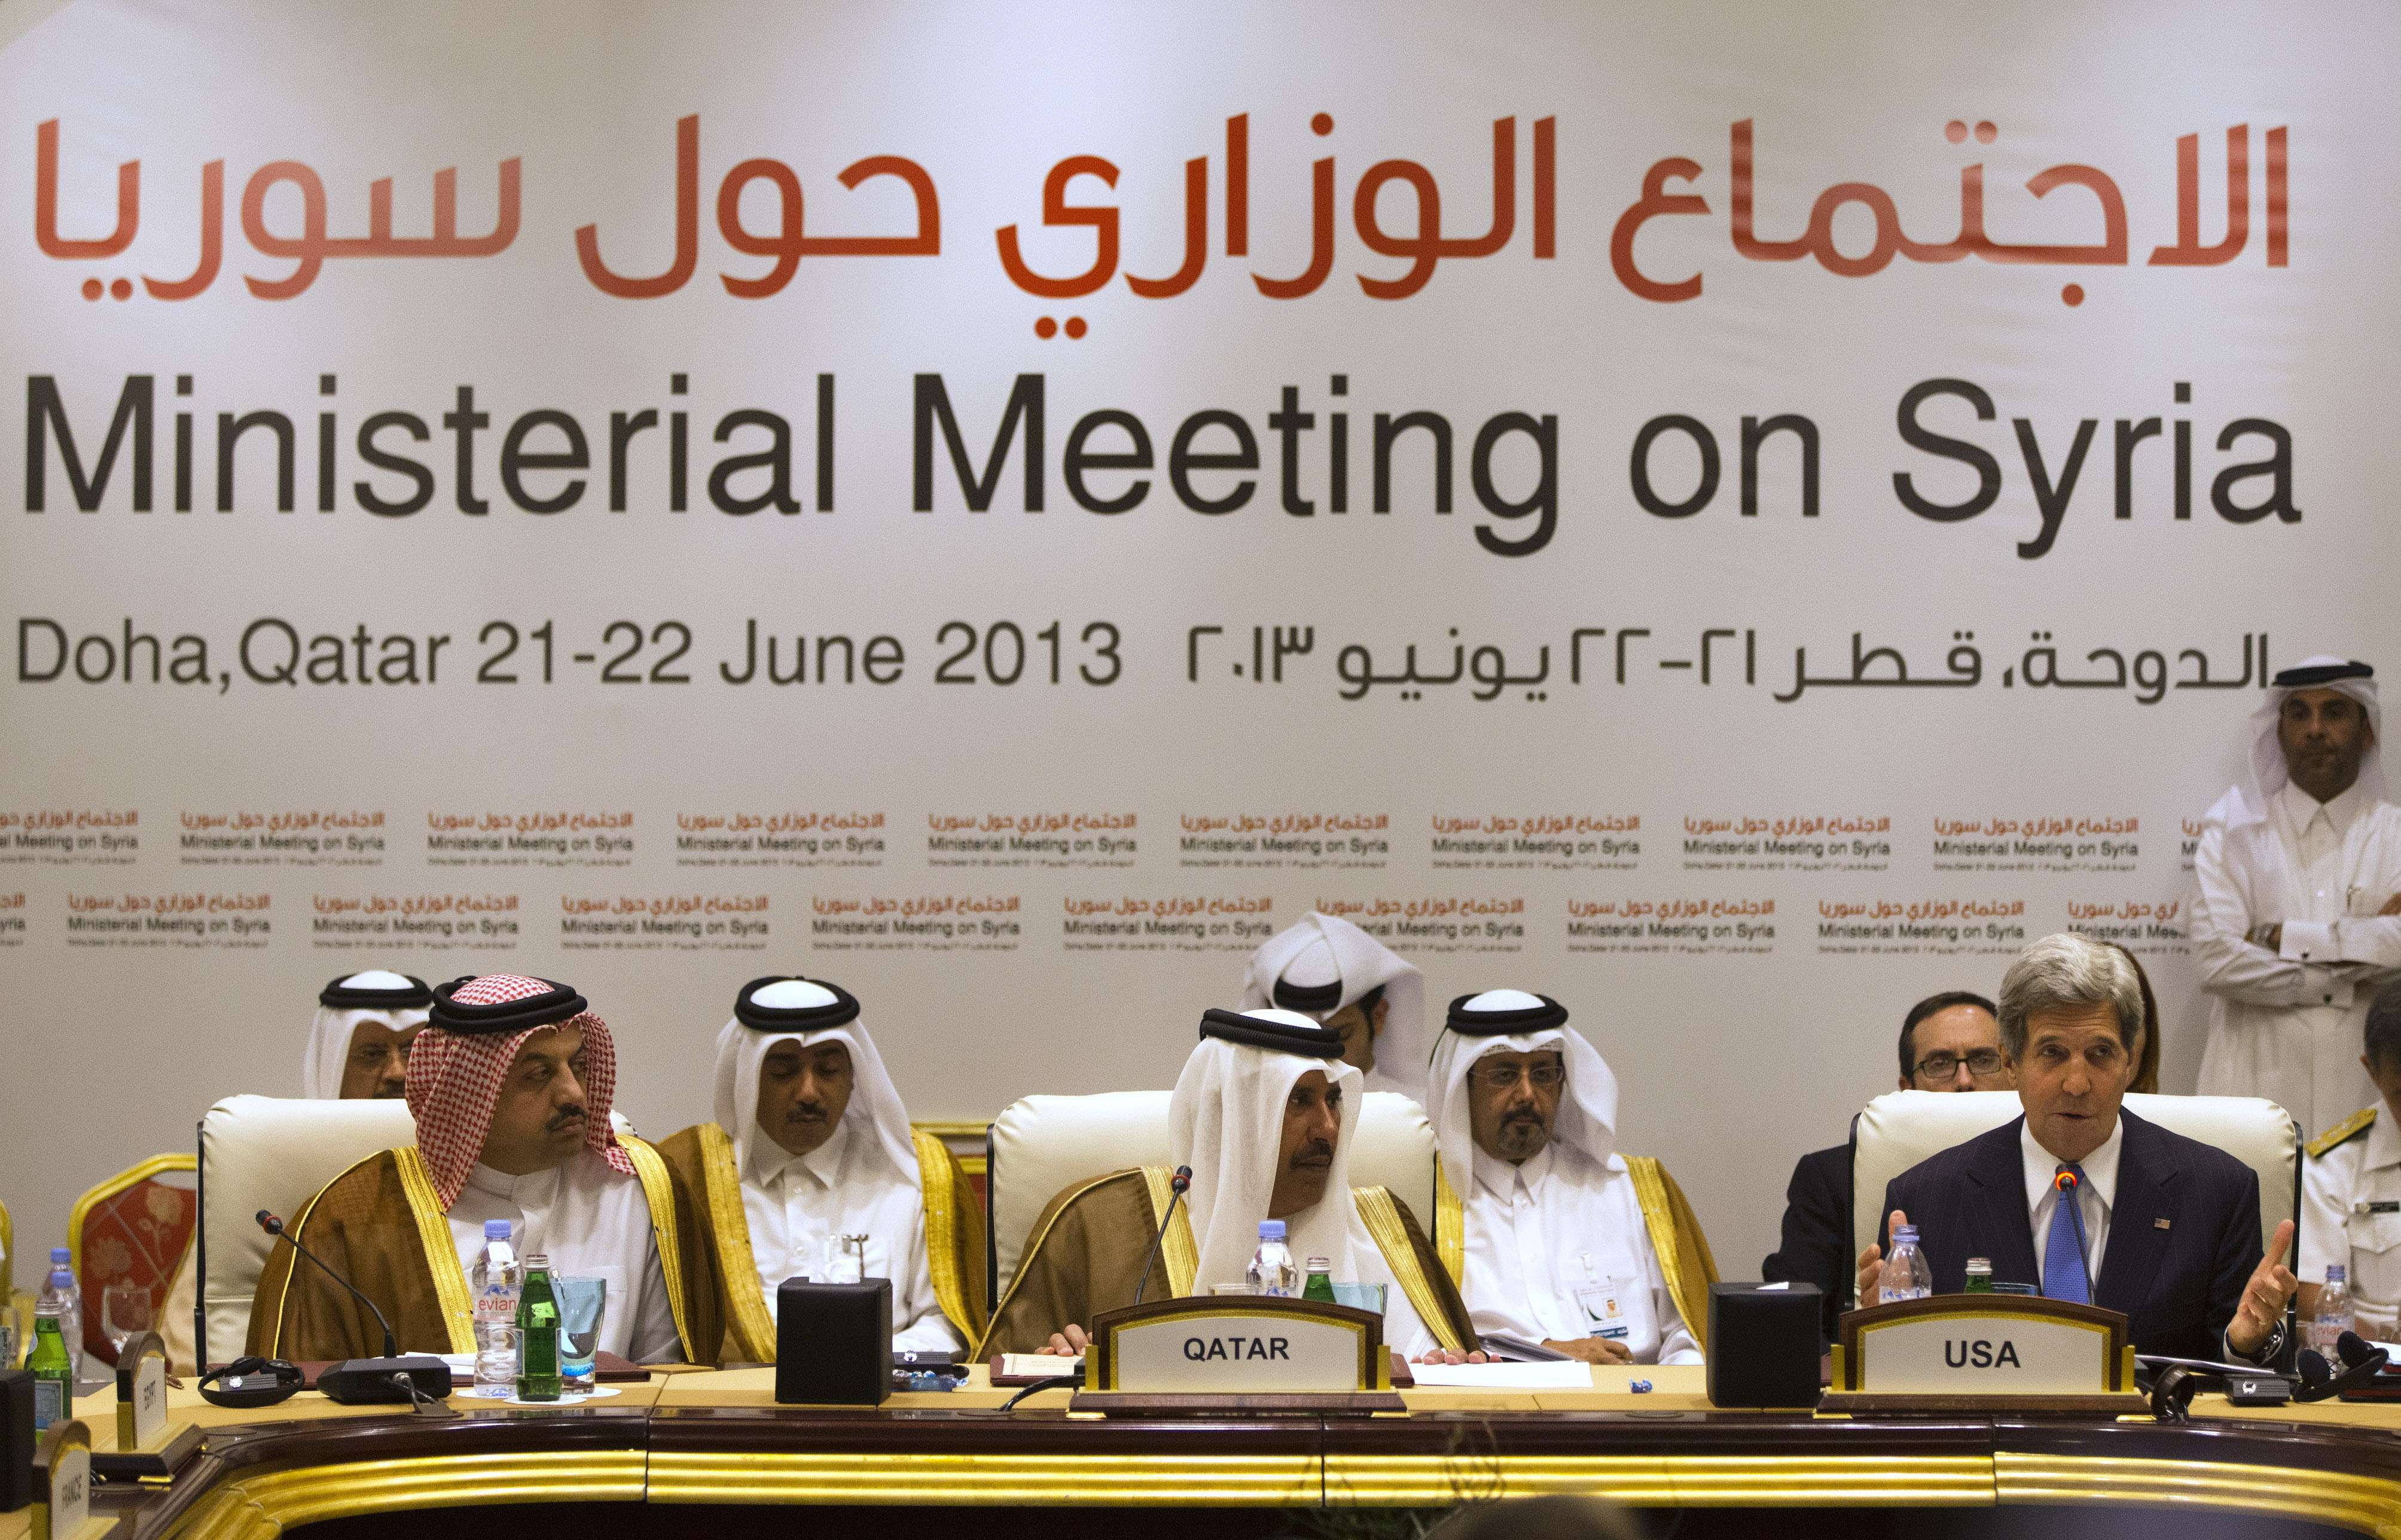 """Khalid al-Attiyah (LL, Qatari acting minister of business and trade, and Qatari Prime Minister and Foreign Minister Hamad bin Jassim bin Jaber al-Thani, listen as U.S. Secretary of State John Kerry as he speaks during a meeting of the London 11 """"Friends of Syria""""  in Doha, on June 22, 2013.  (AFP Photo)"""